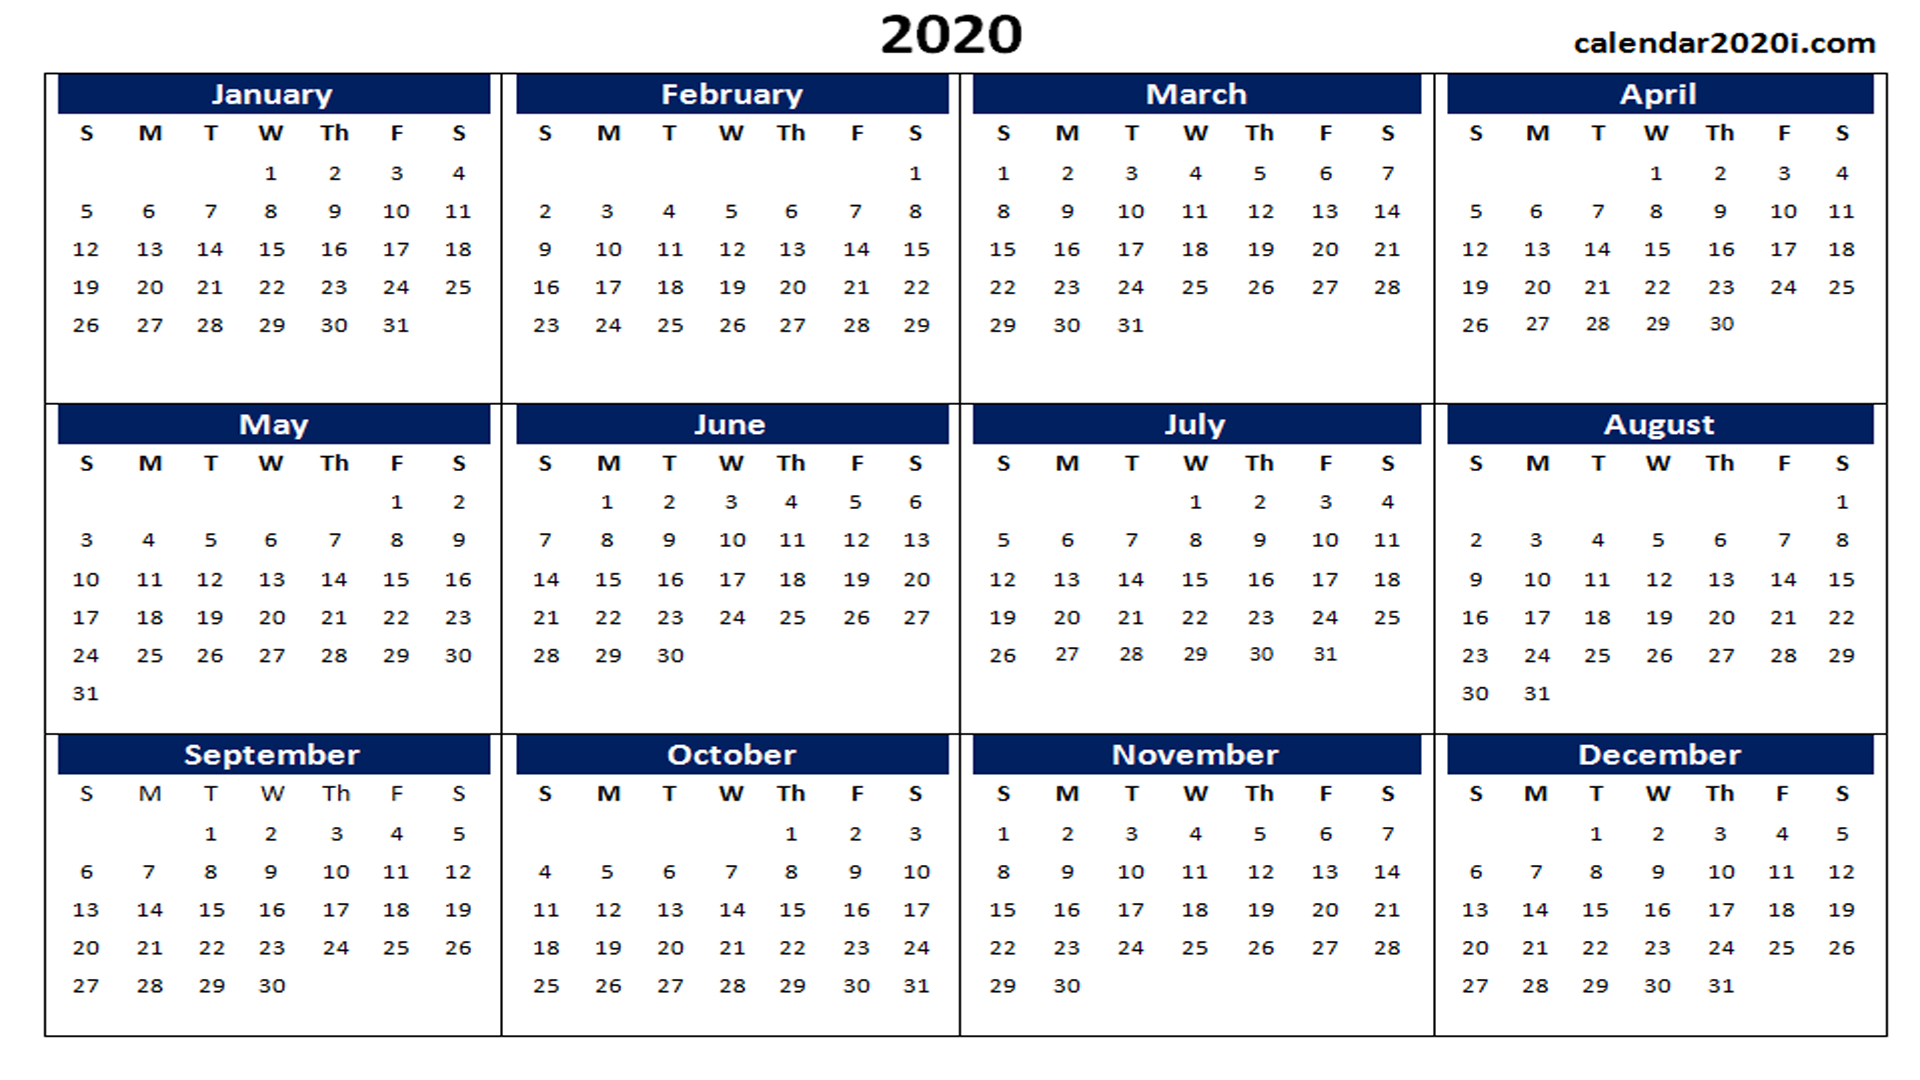 Blank 2020 Calendar Printable Templates | Calendar 2020 throughout Calendar 2020 That Can Be Edited